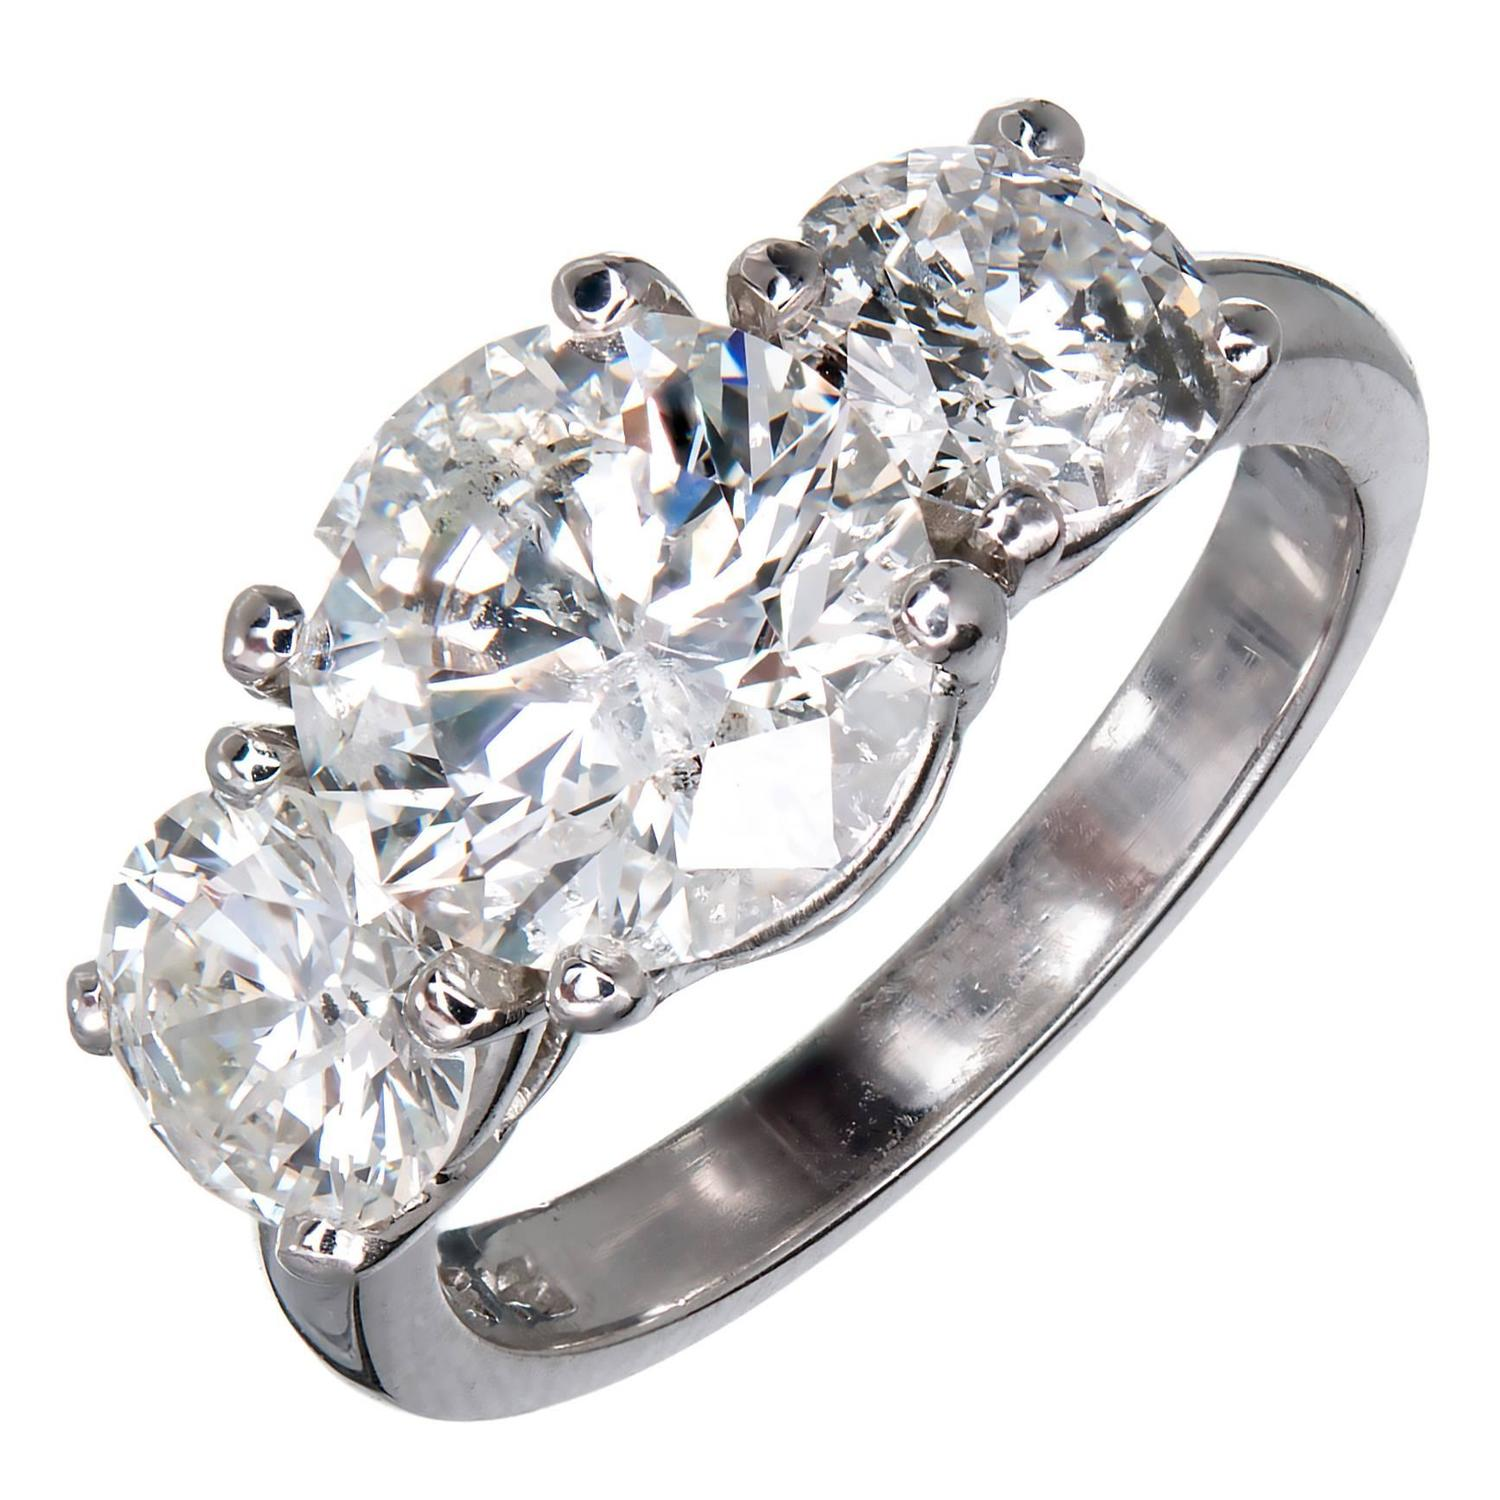 jewellery usa ring gorgeous in diamond aj of engagement aaa retail wa rings